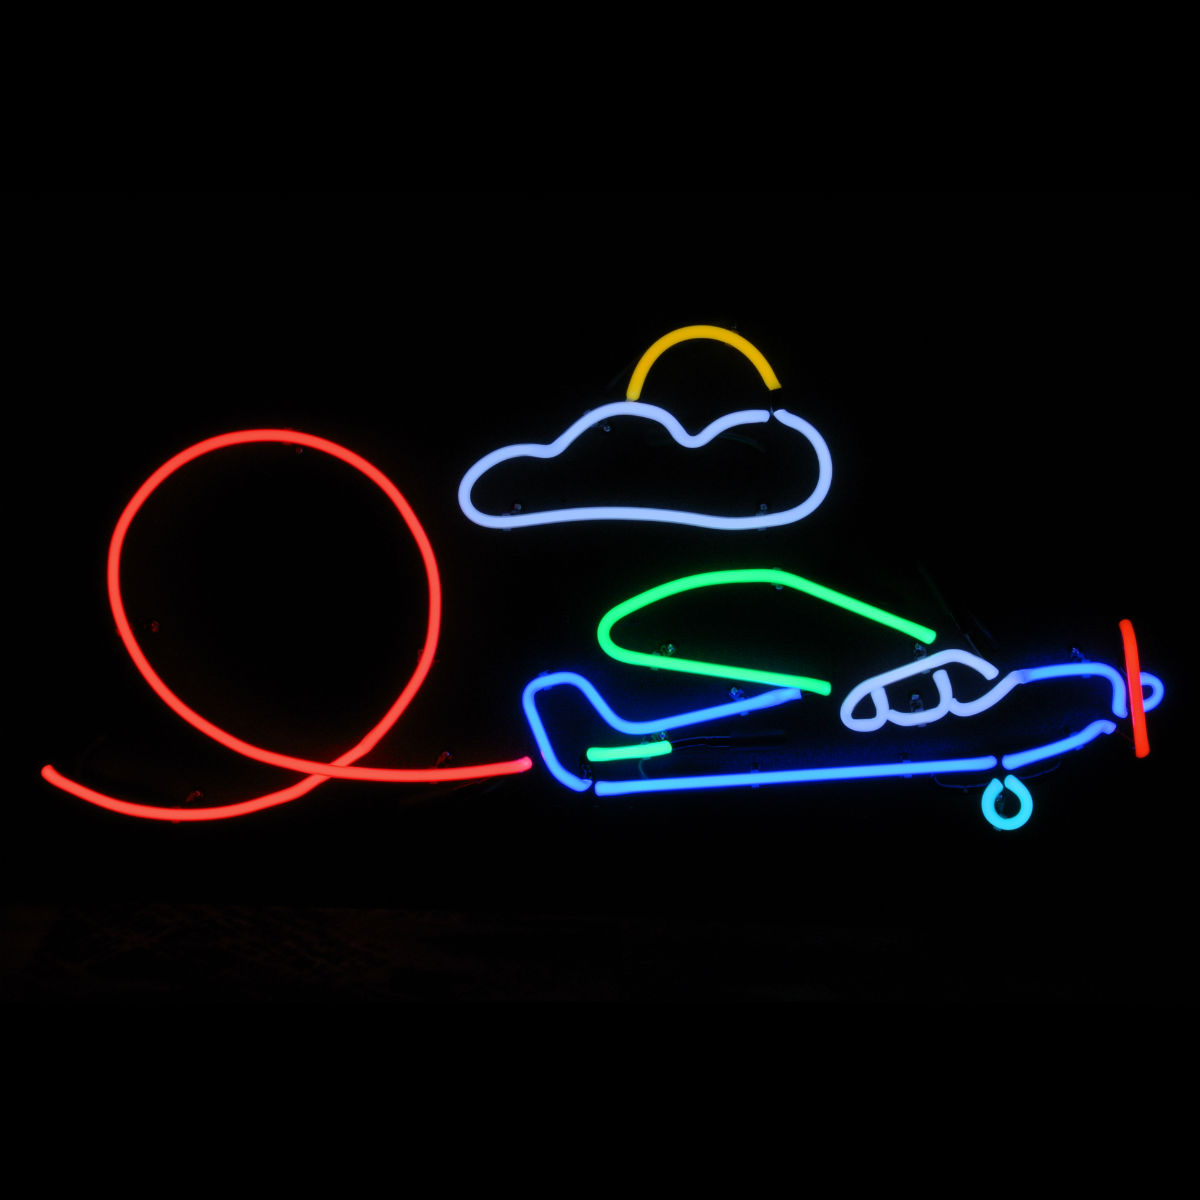 Love airplanes? Spectacular Custom Aviation Neon!